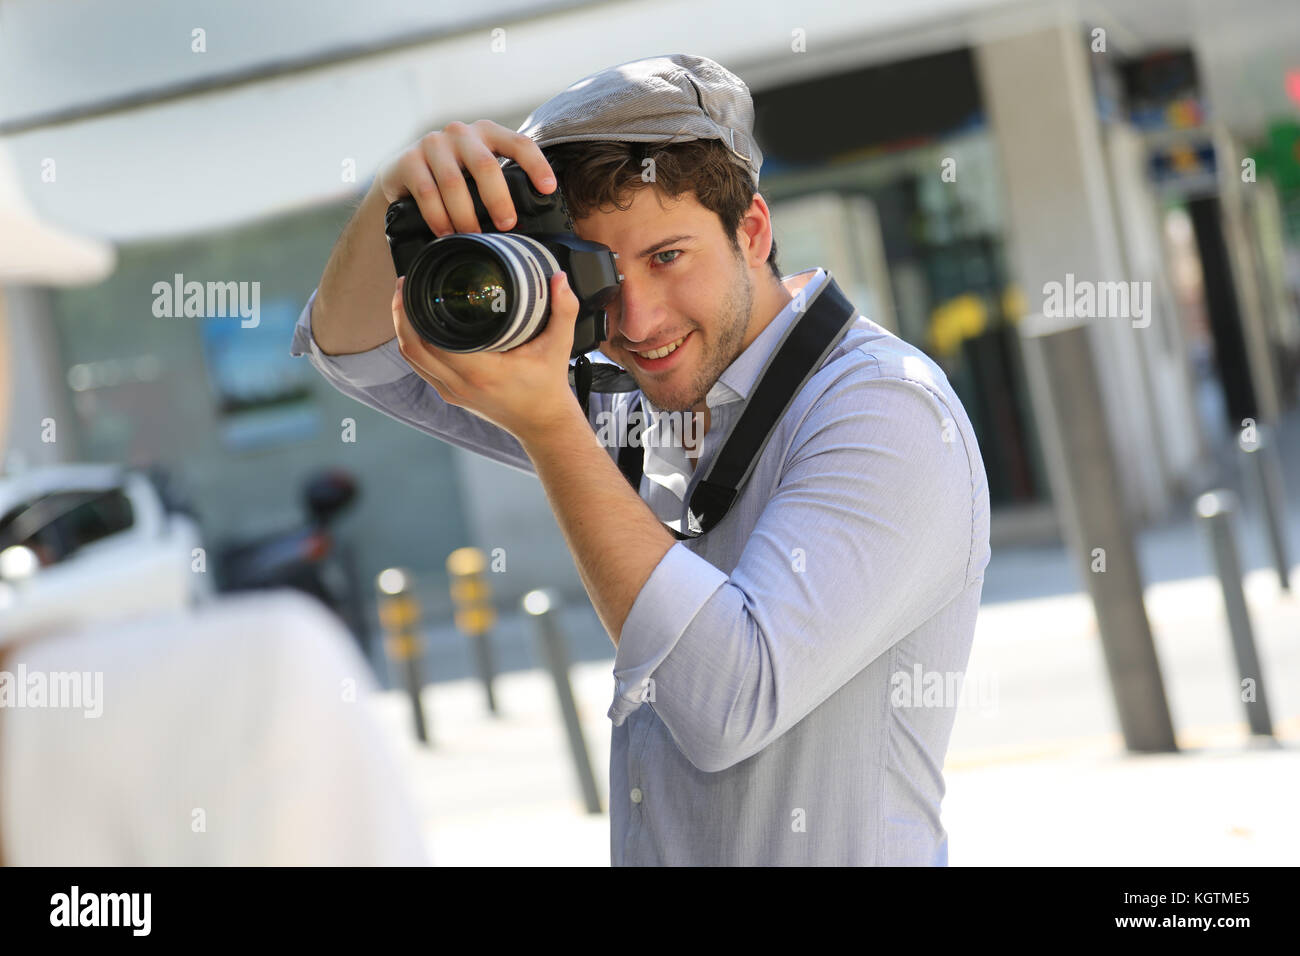 Photographer taking picture of woman model - Stock Image